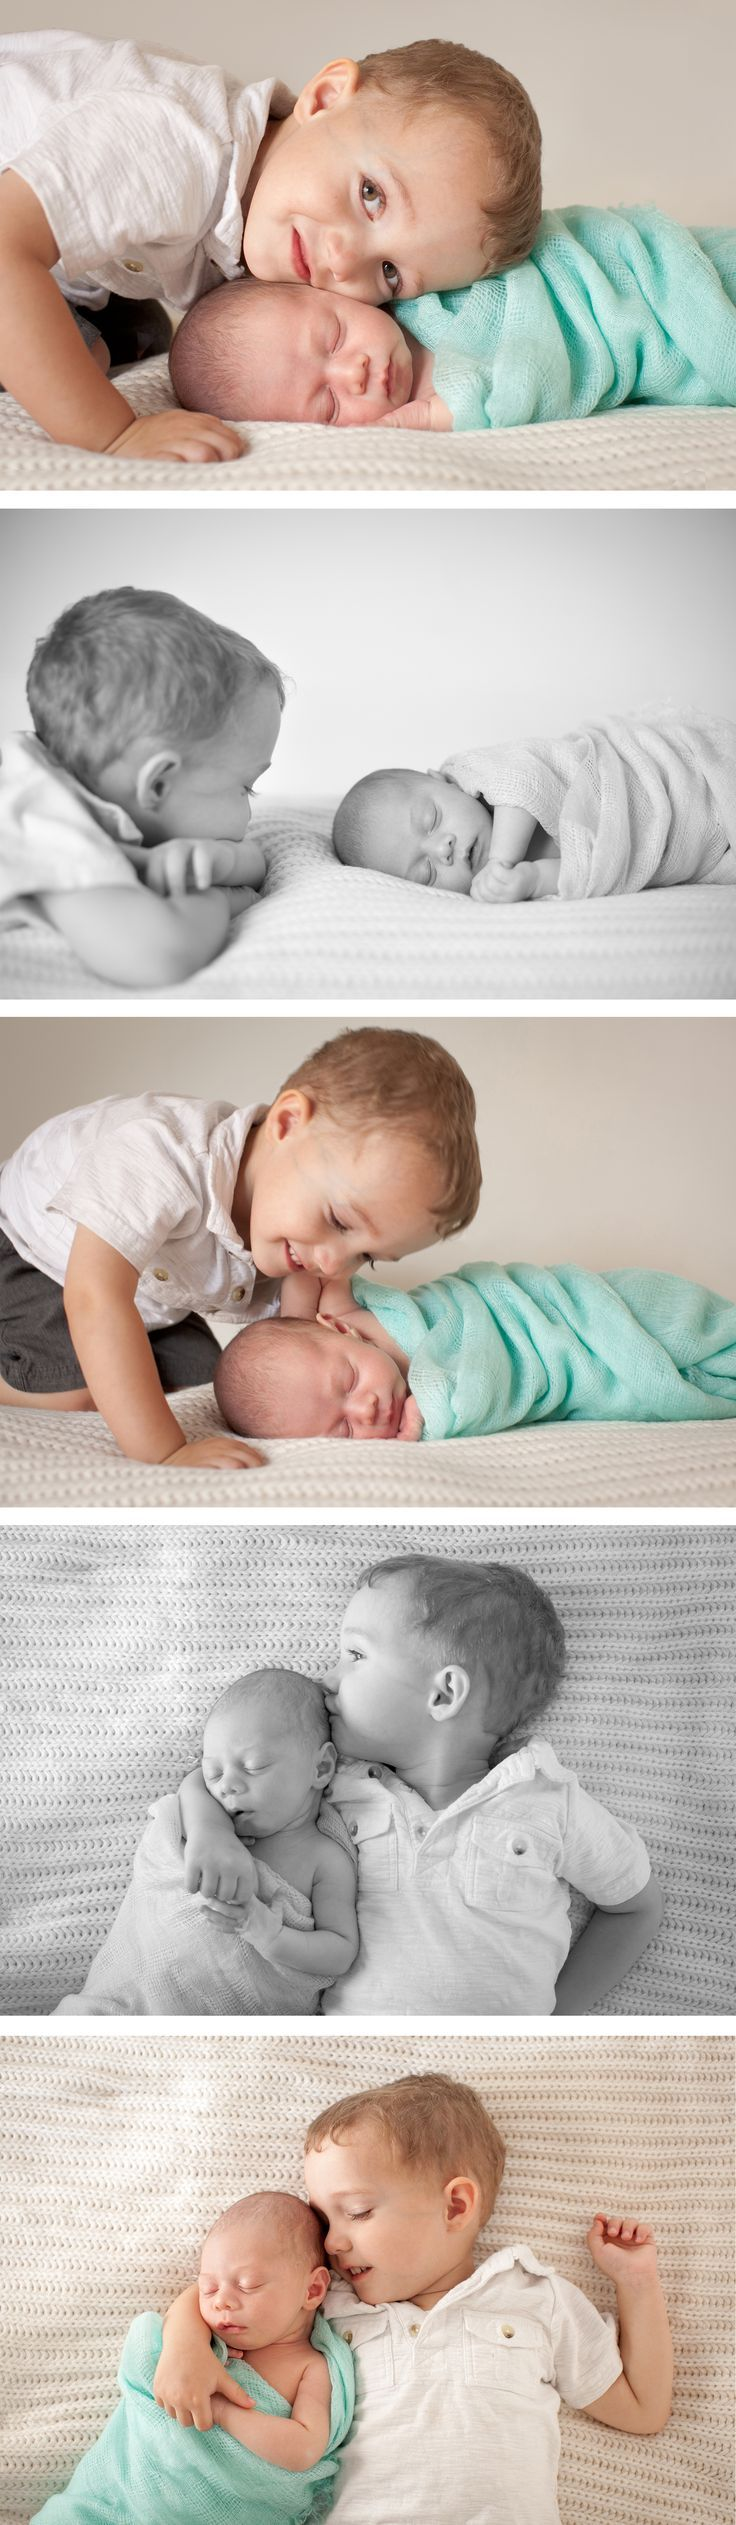 Posing for a newborn and older sibling.                                                                                                                                                                                 More